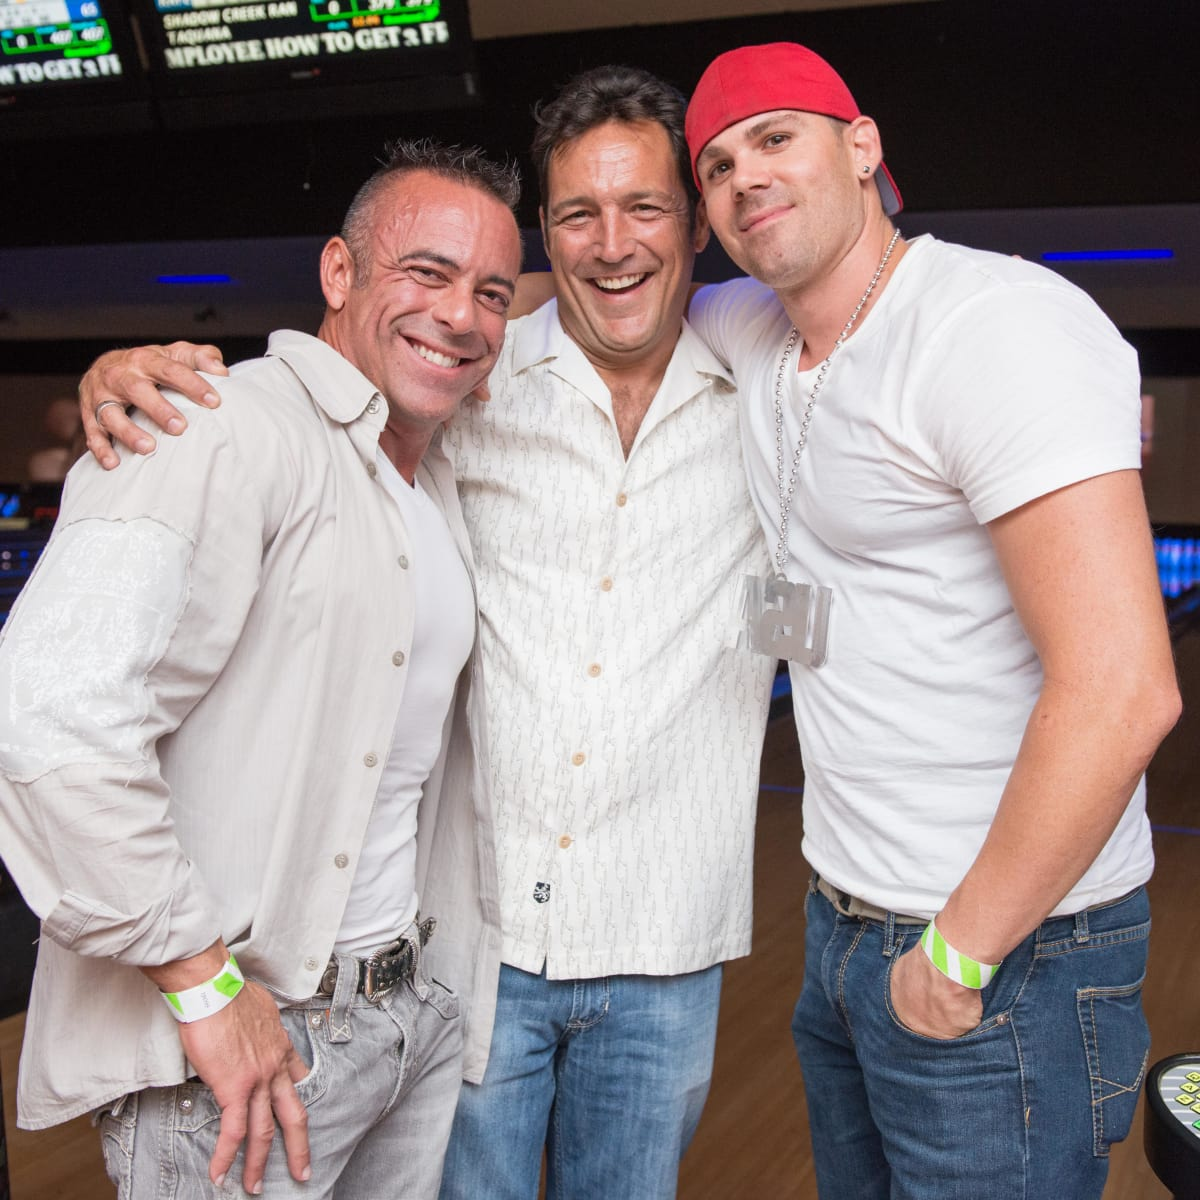 Chester Pitts bowling event Brian DeArmas, Bobby Little, Kevork Yekobian